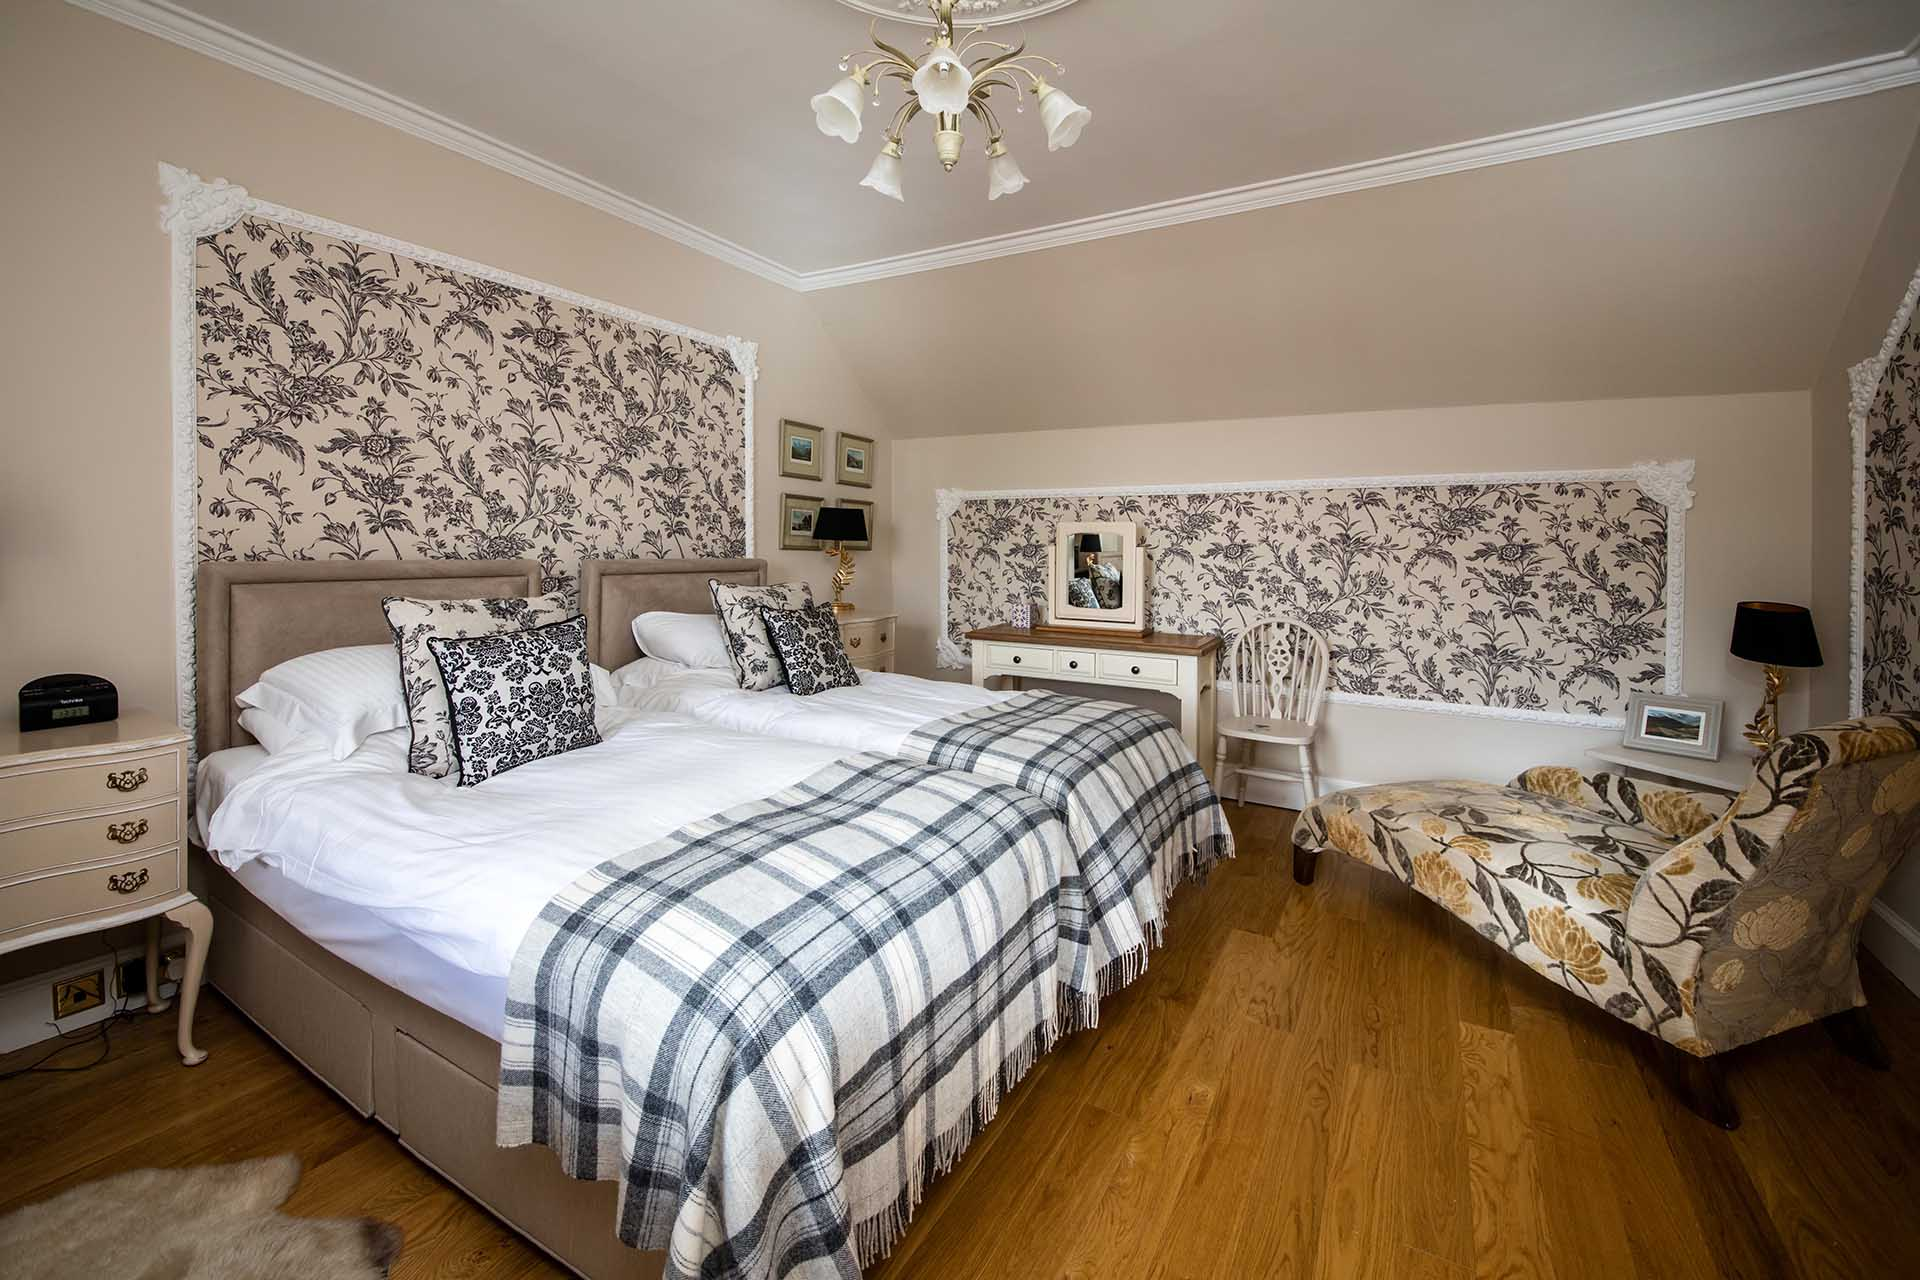 Both twin bedrooms have views over the front garden.